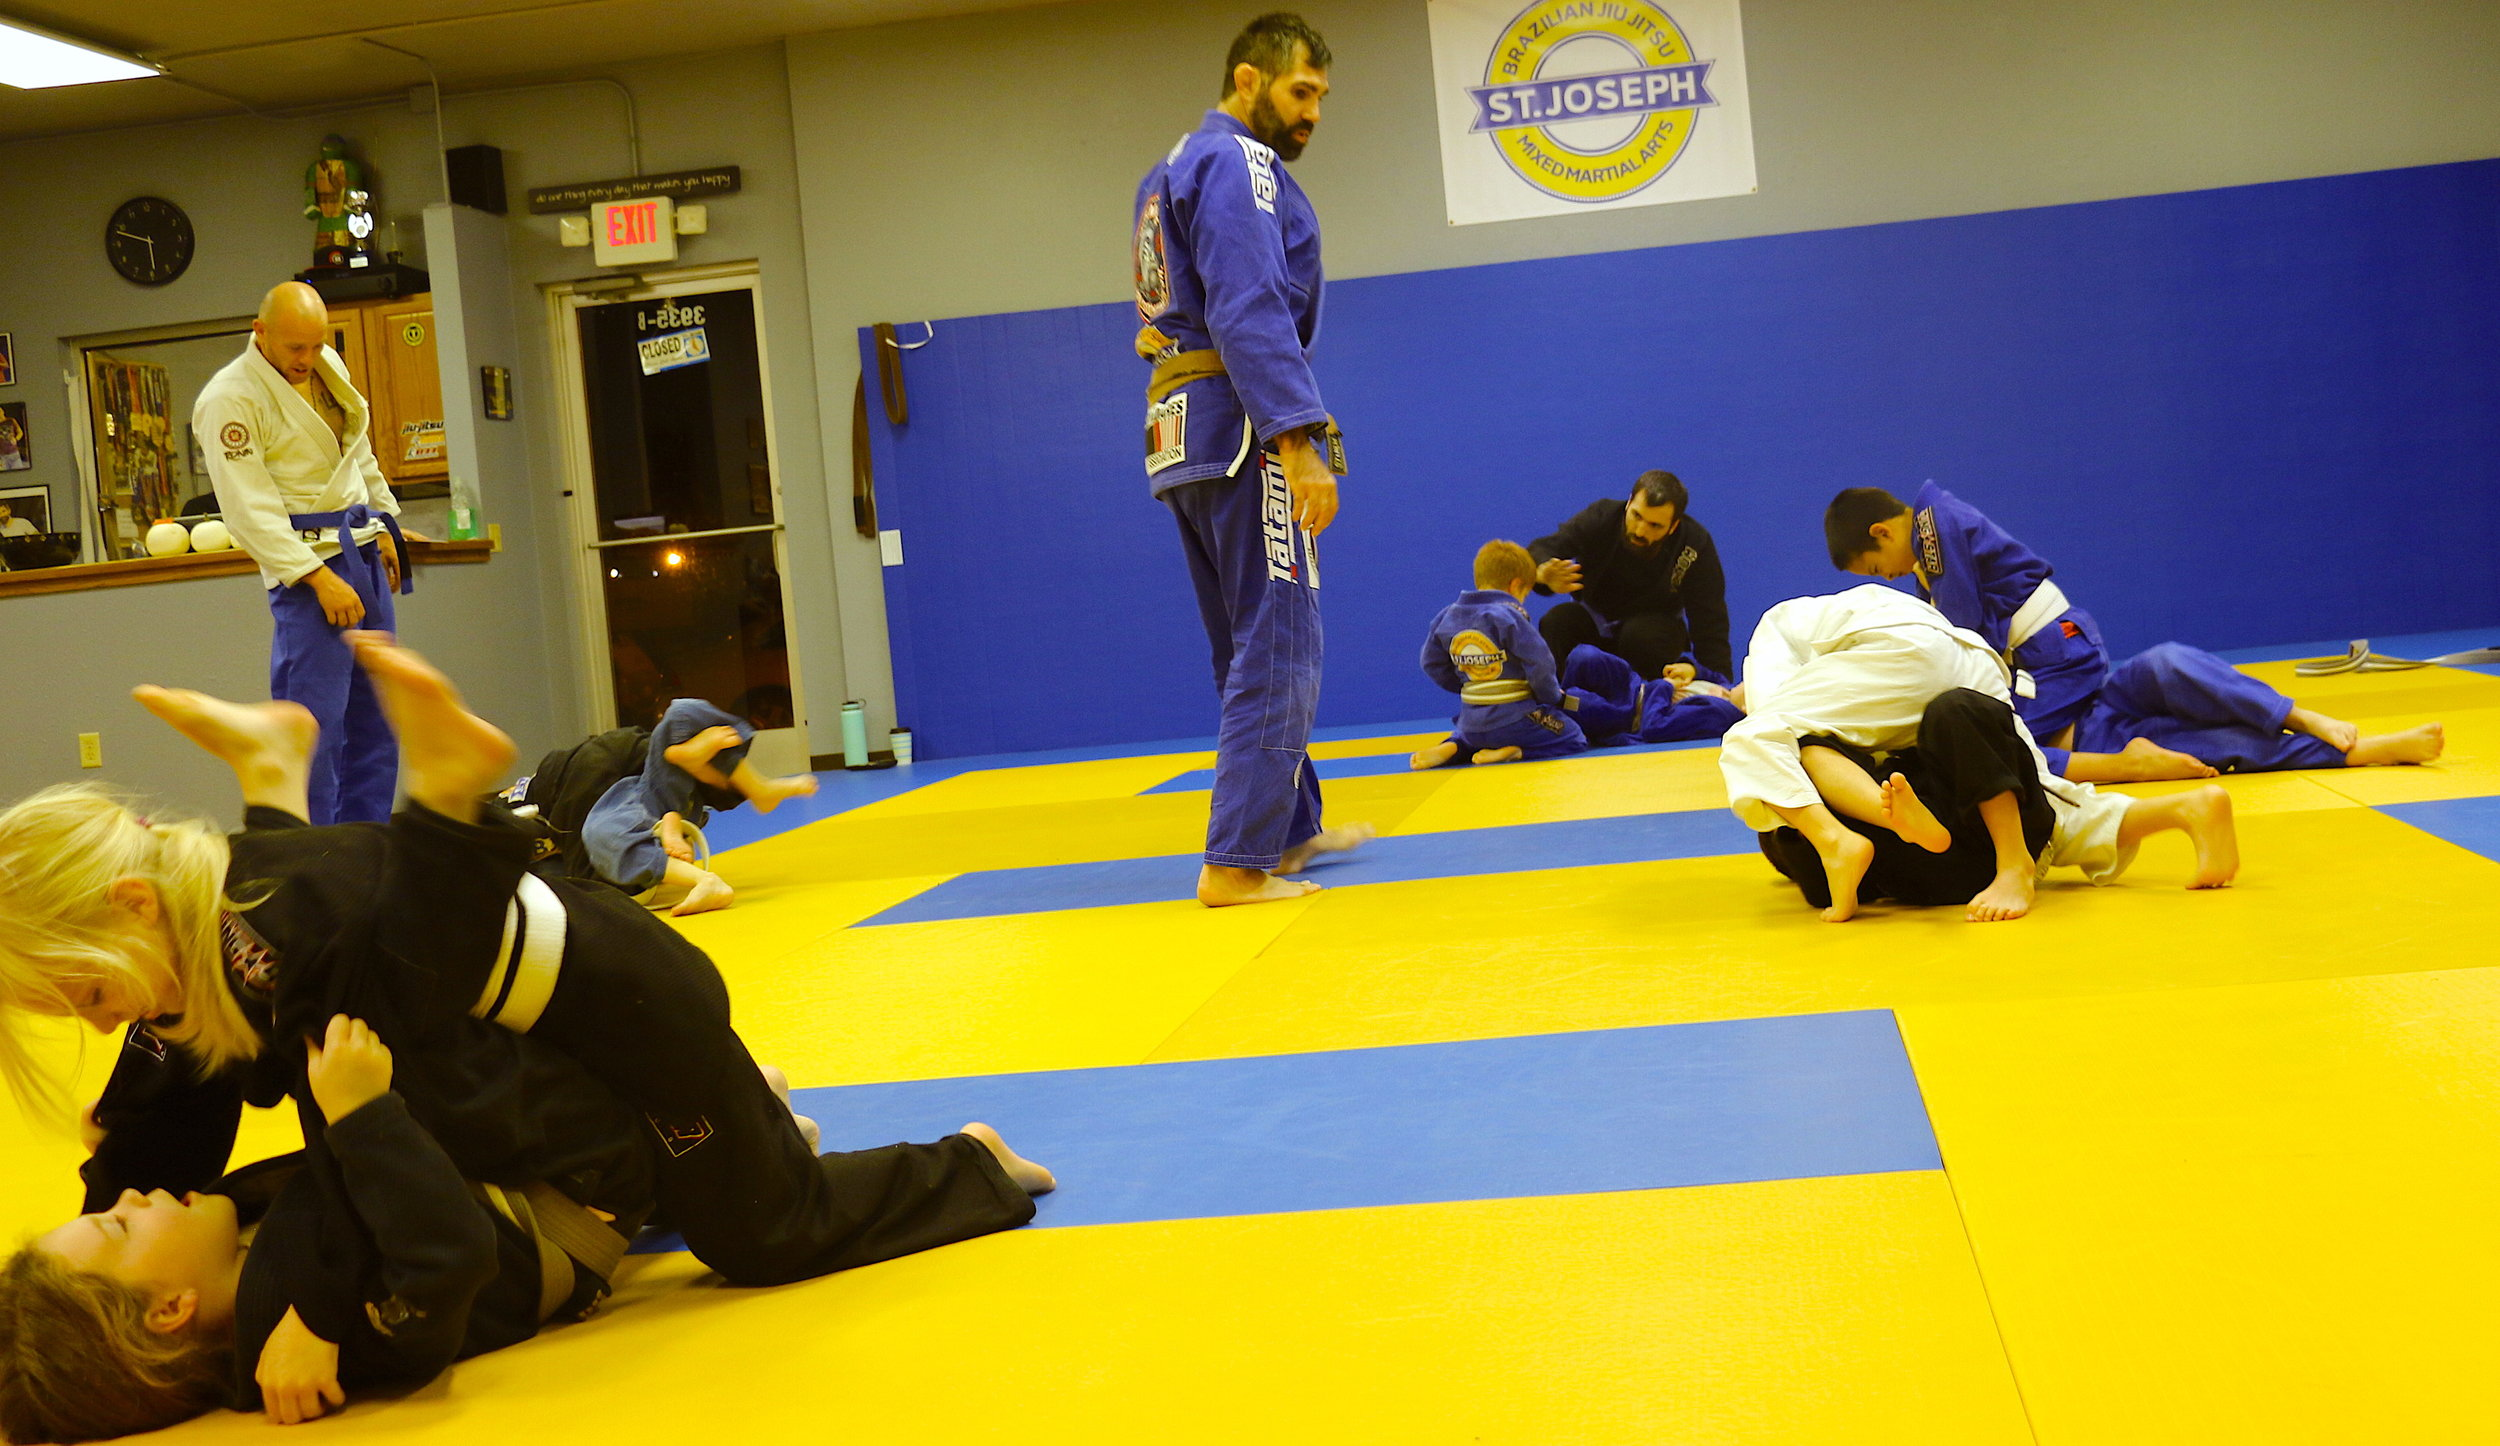 Our 5-8 year olds practicing mount escapes, a vital movement in Jiu Jitsu and a potential position that may occur during a run in with a bully.